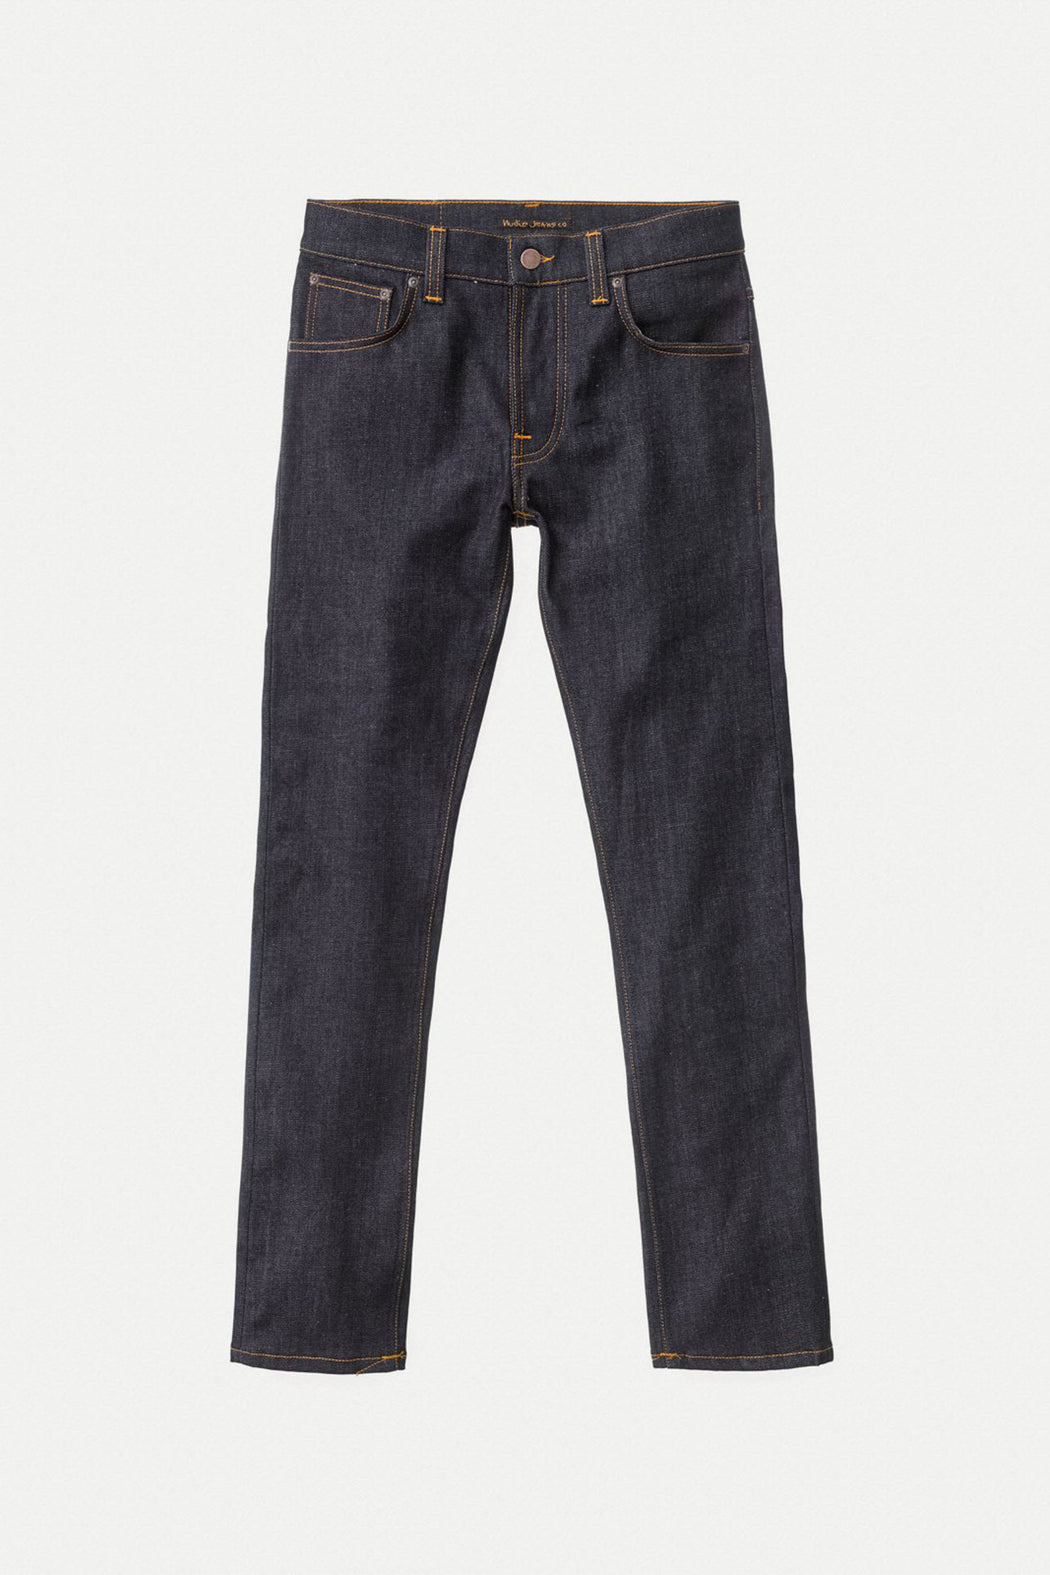 GRIM TIM Jeans dry true navy